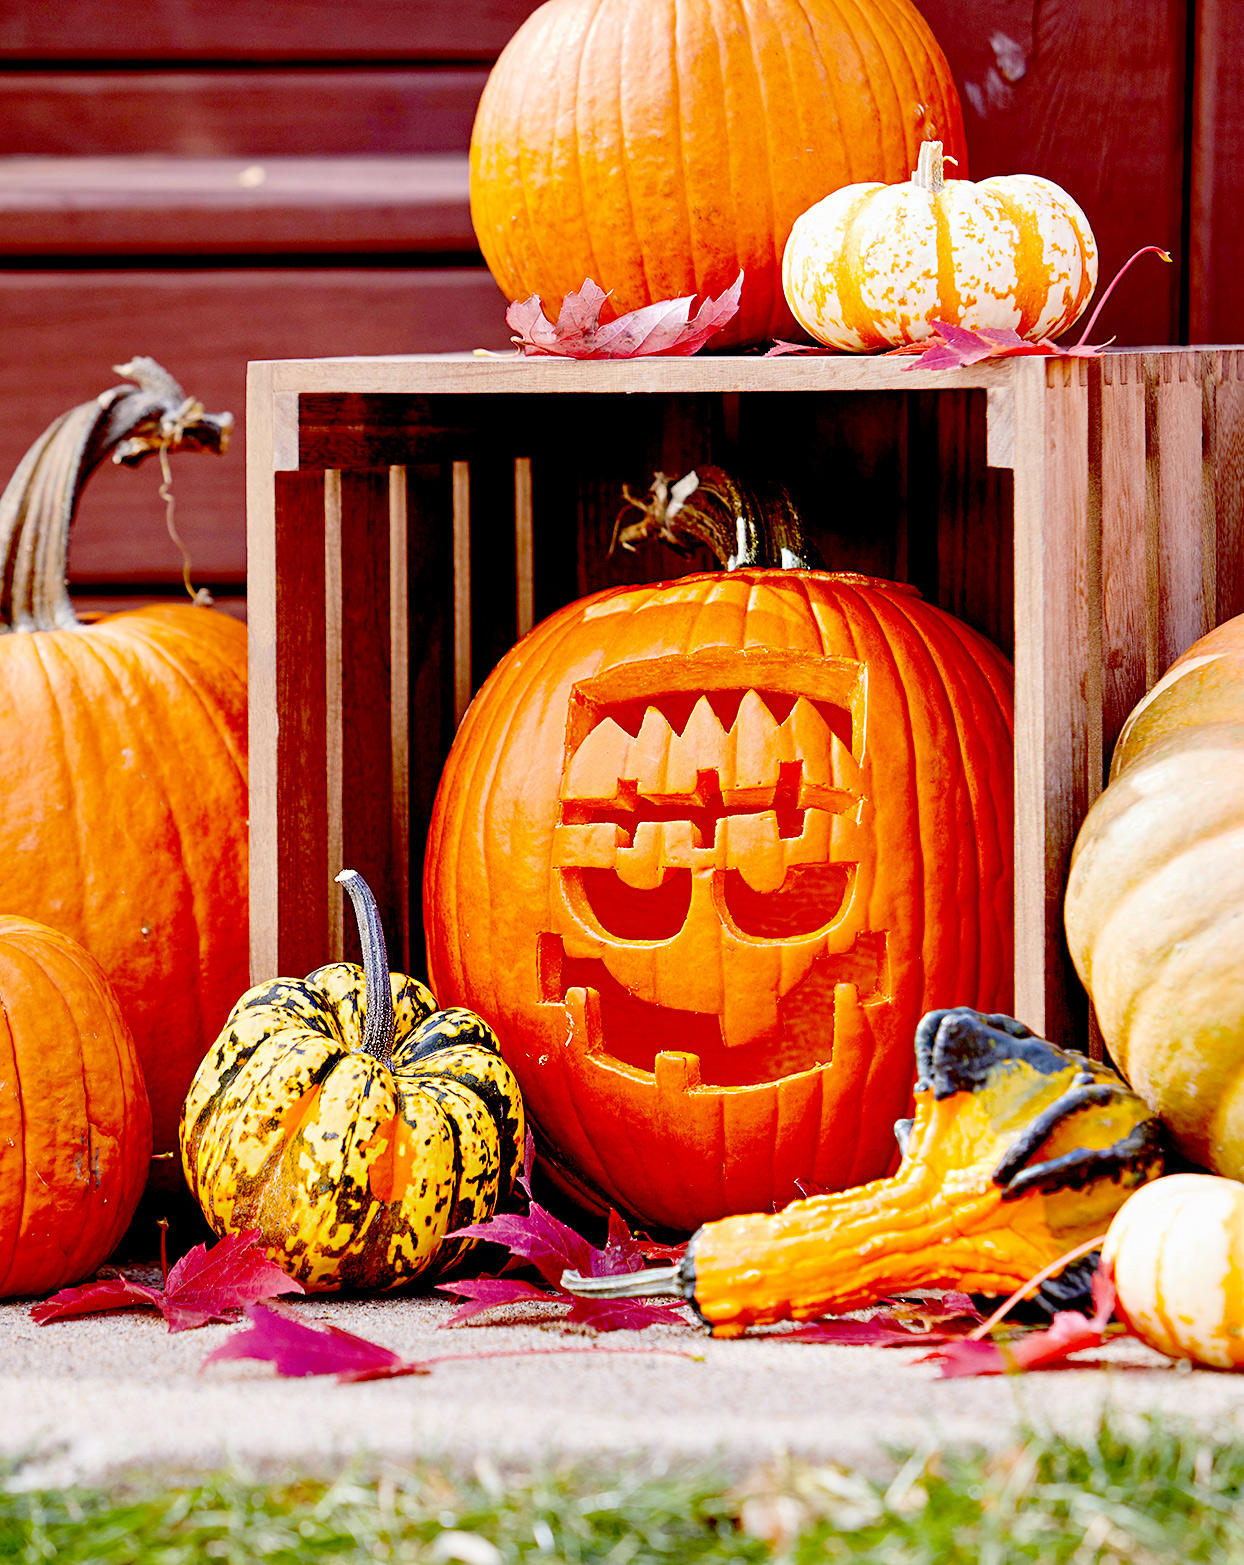 Fall décor with carved Frankenstein pumpkin